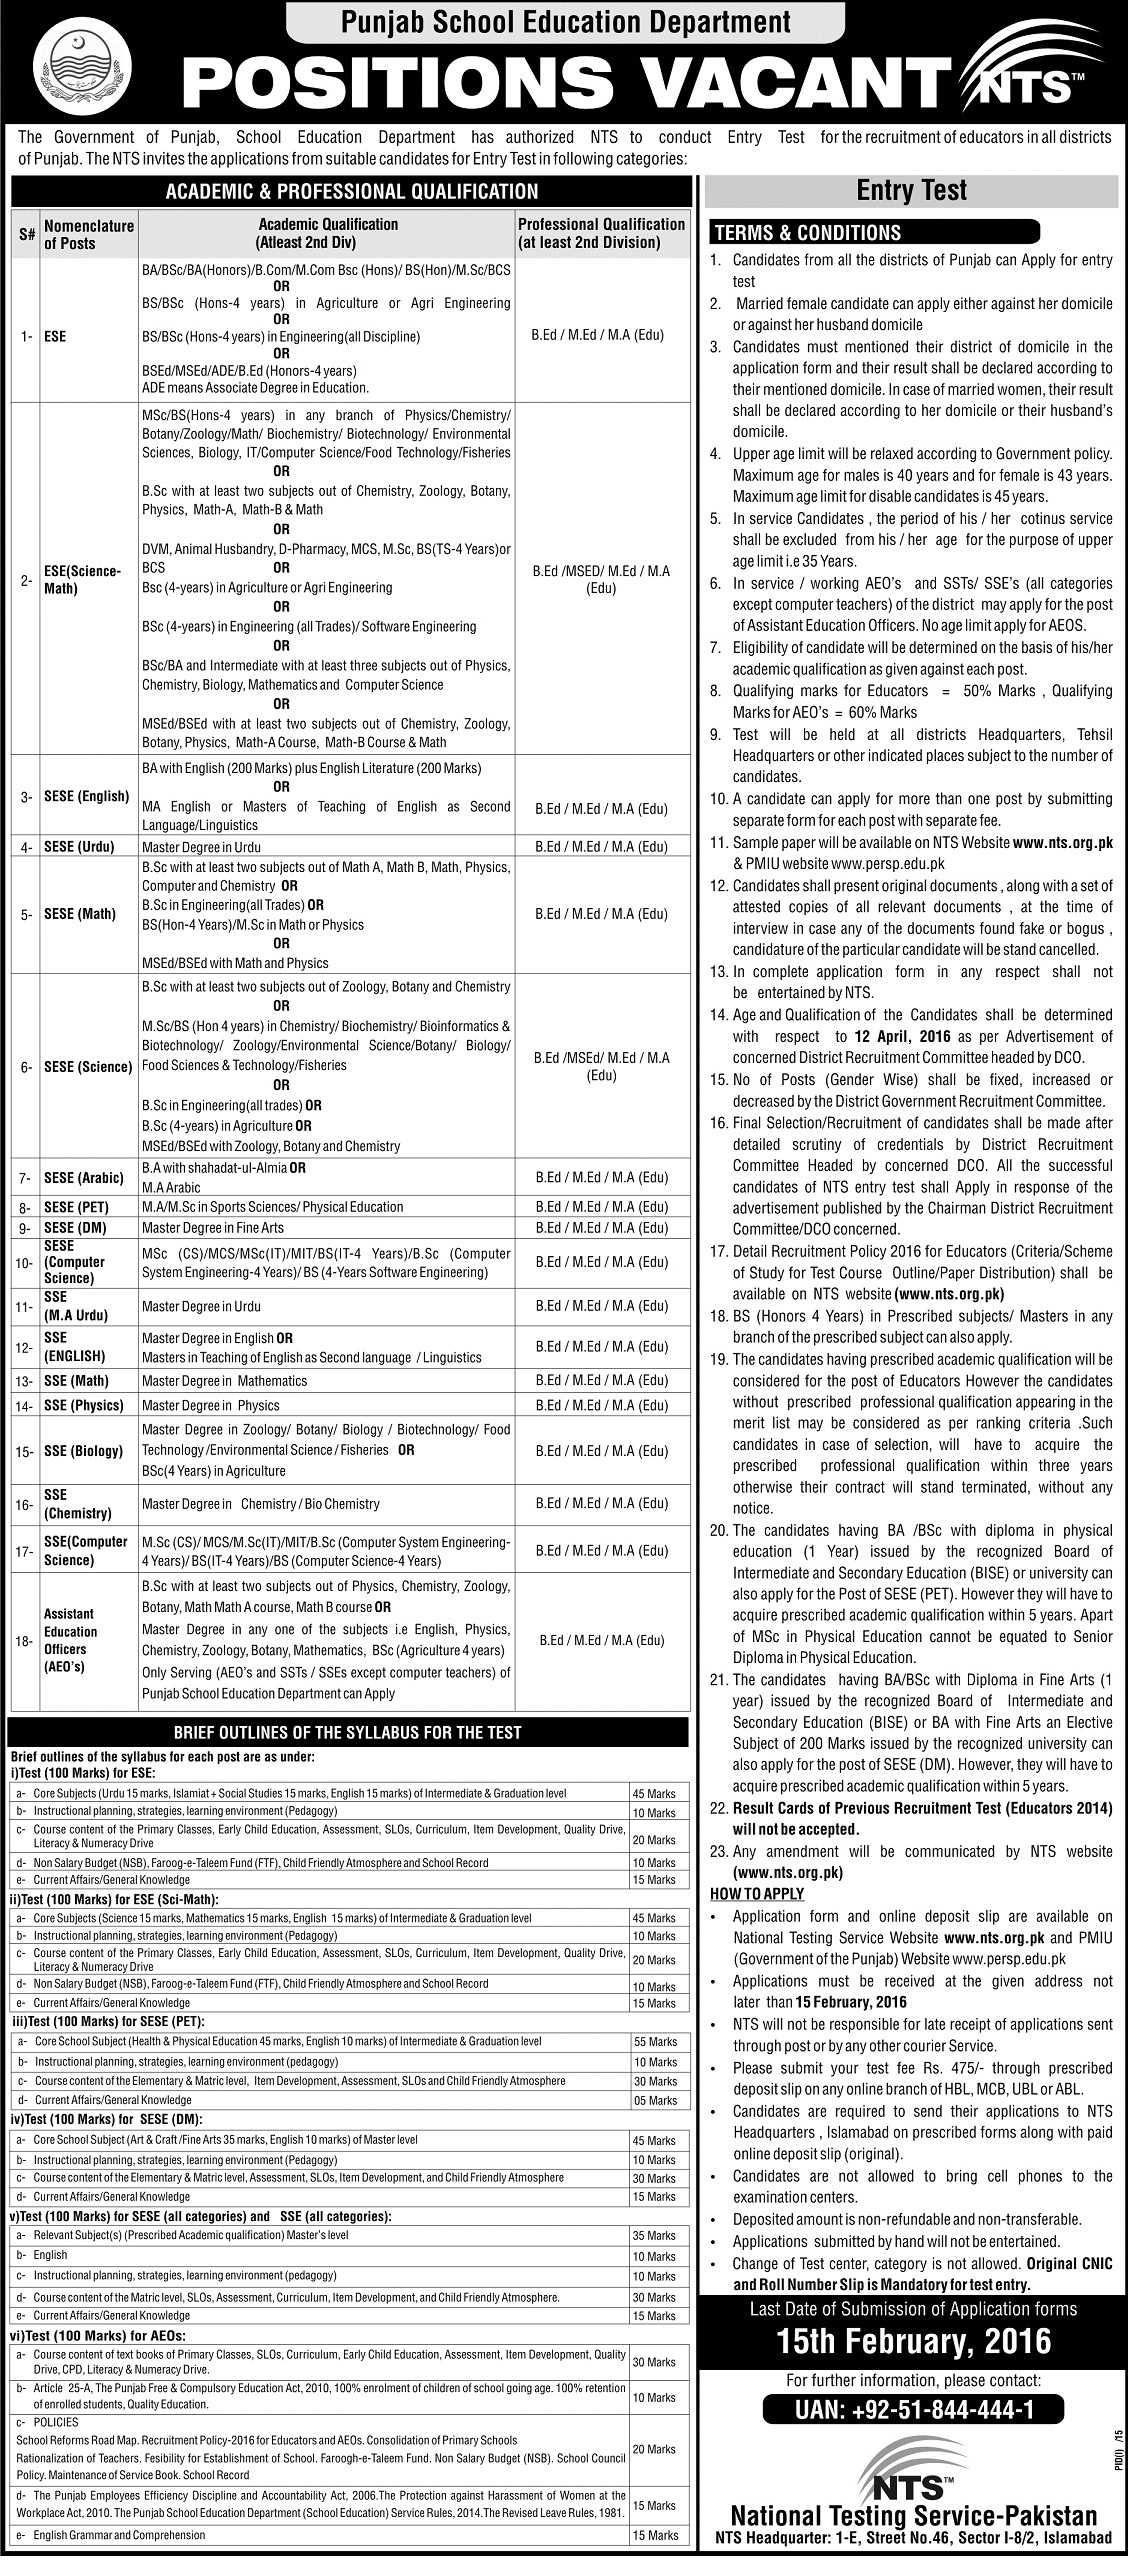 aeo jobs in punjab education department nts application form aeo jobs 2016 in punjab education department nts application form